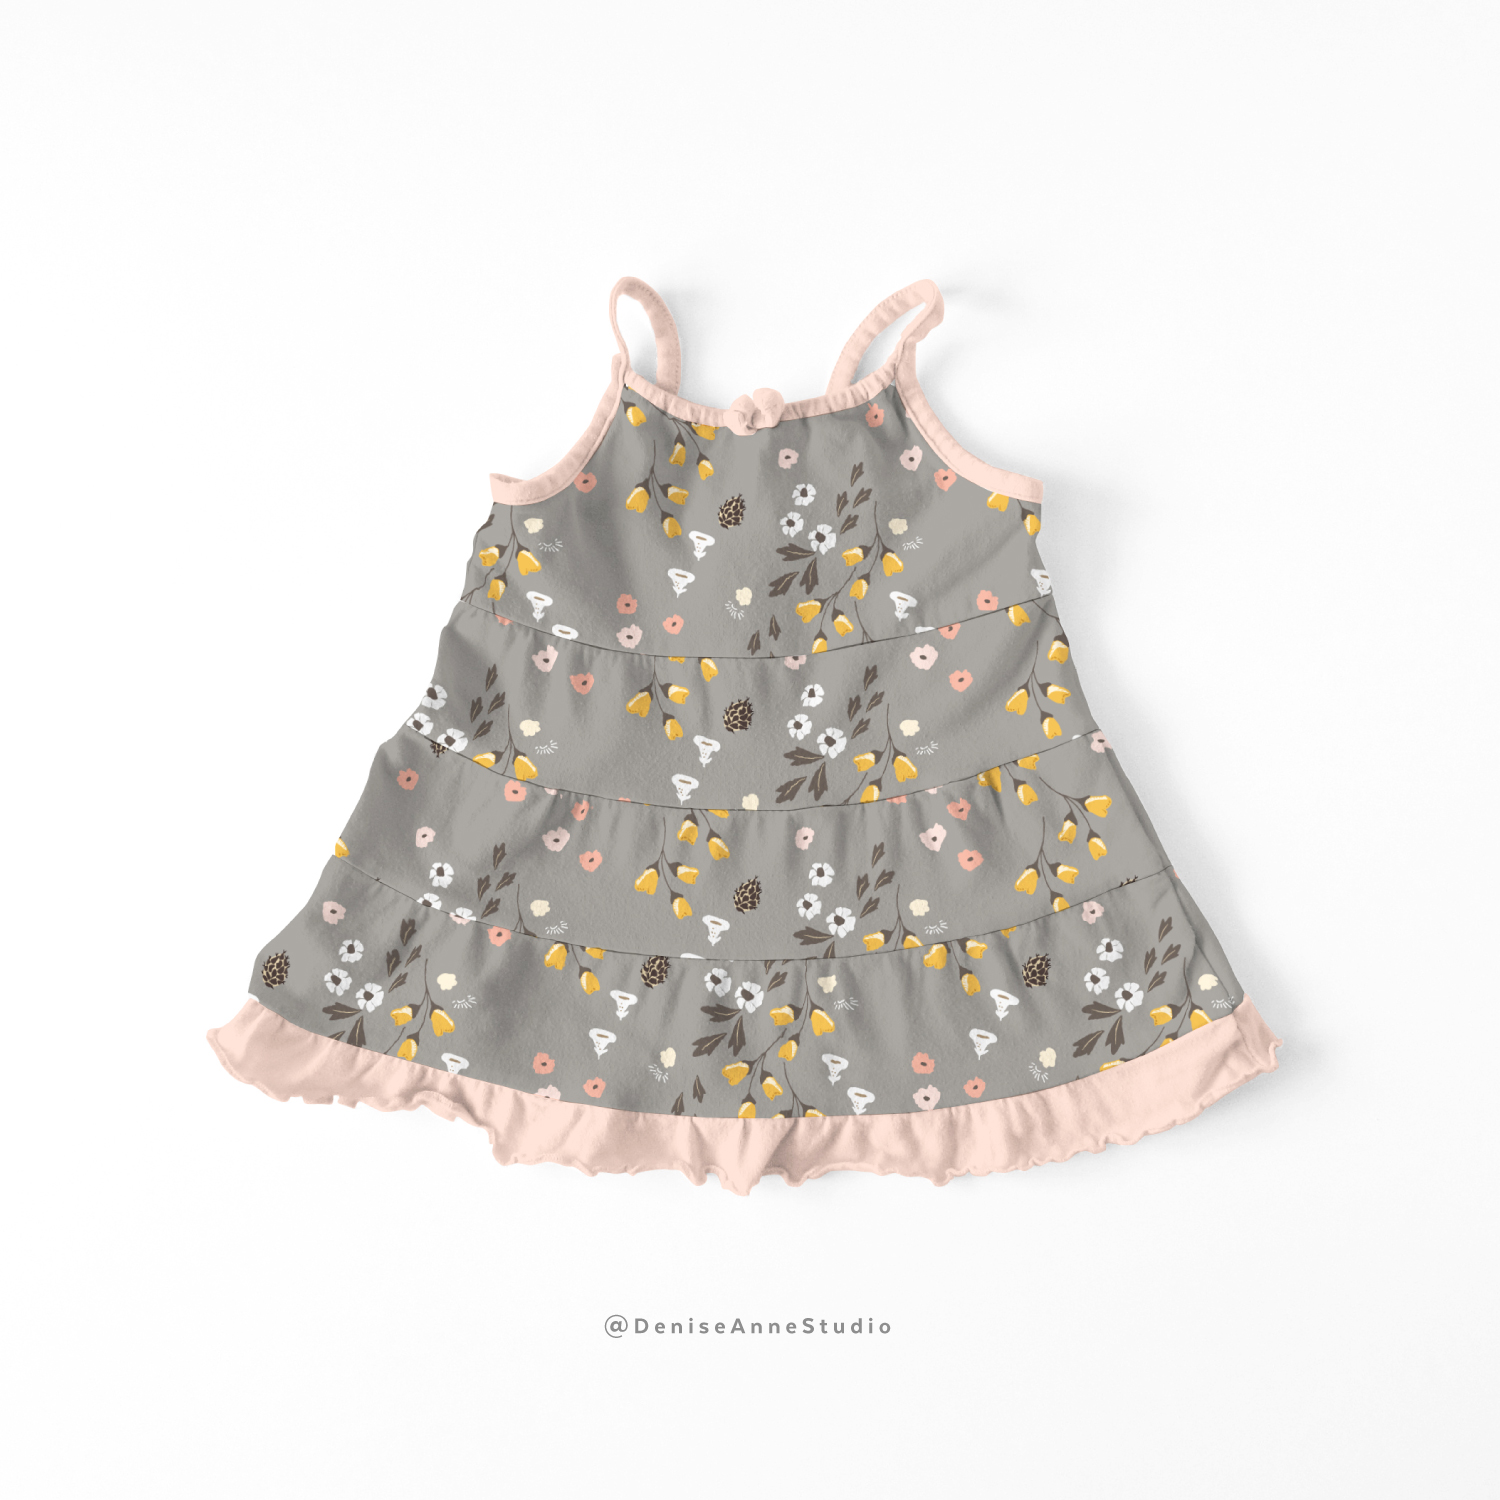 pattern-mock-up-baby-dress